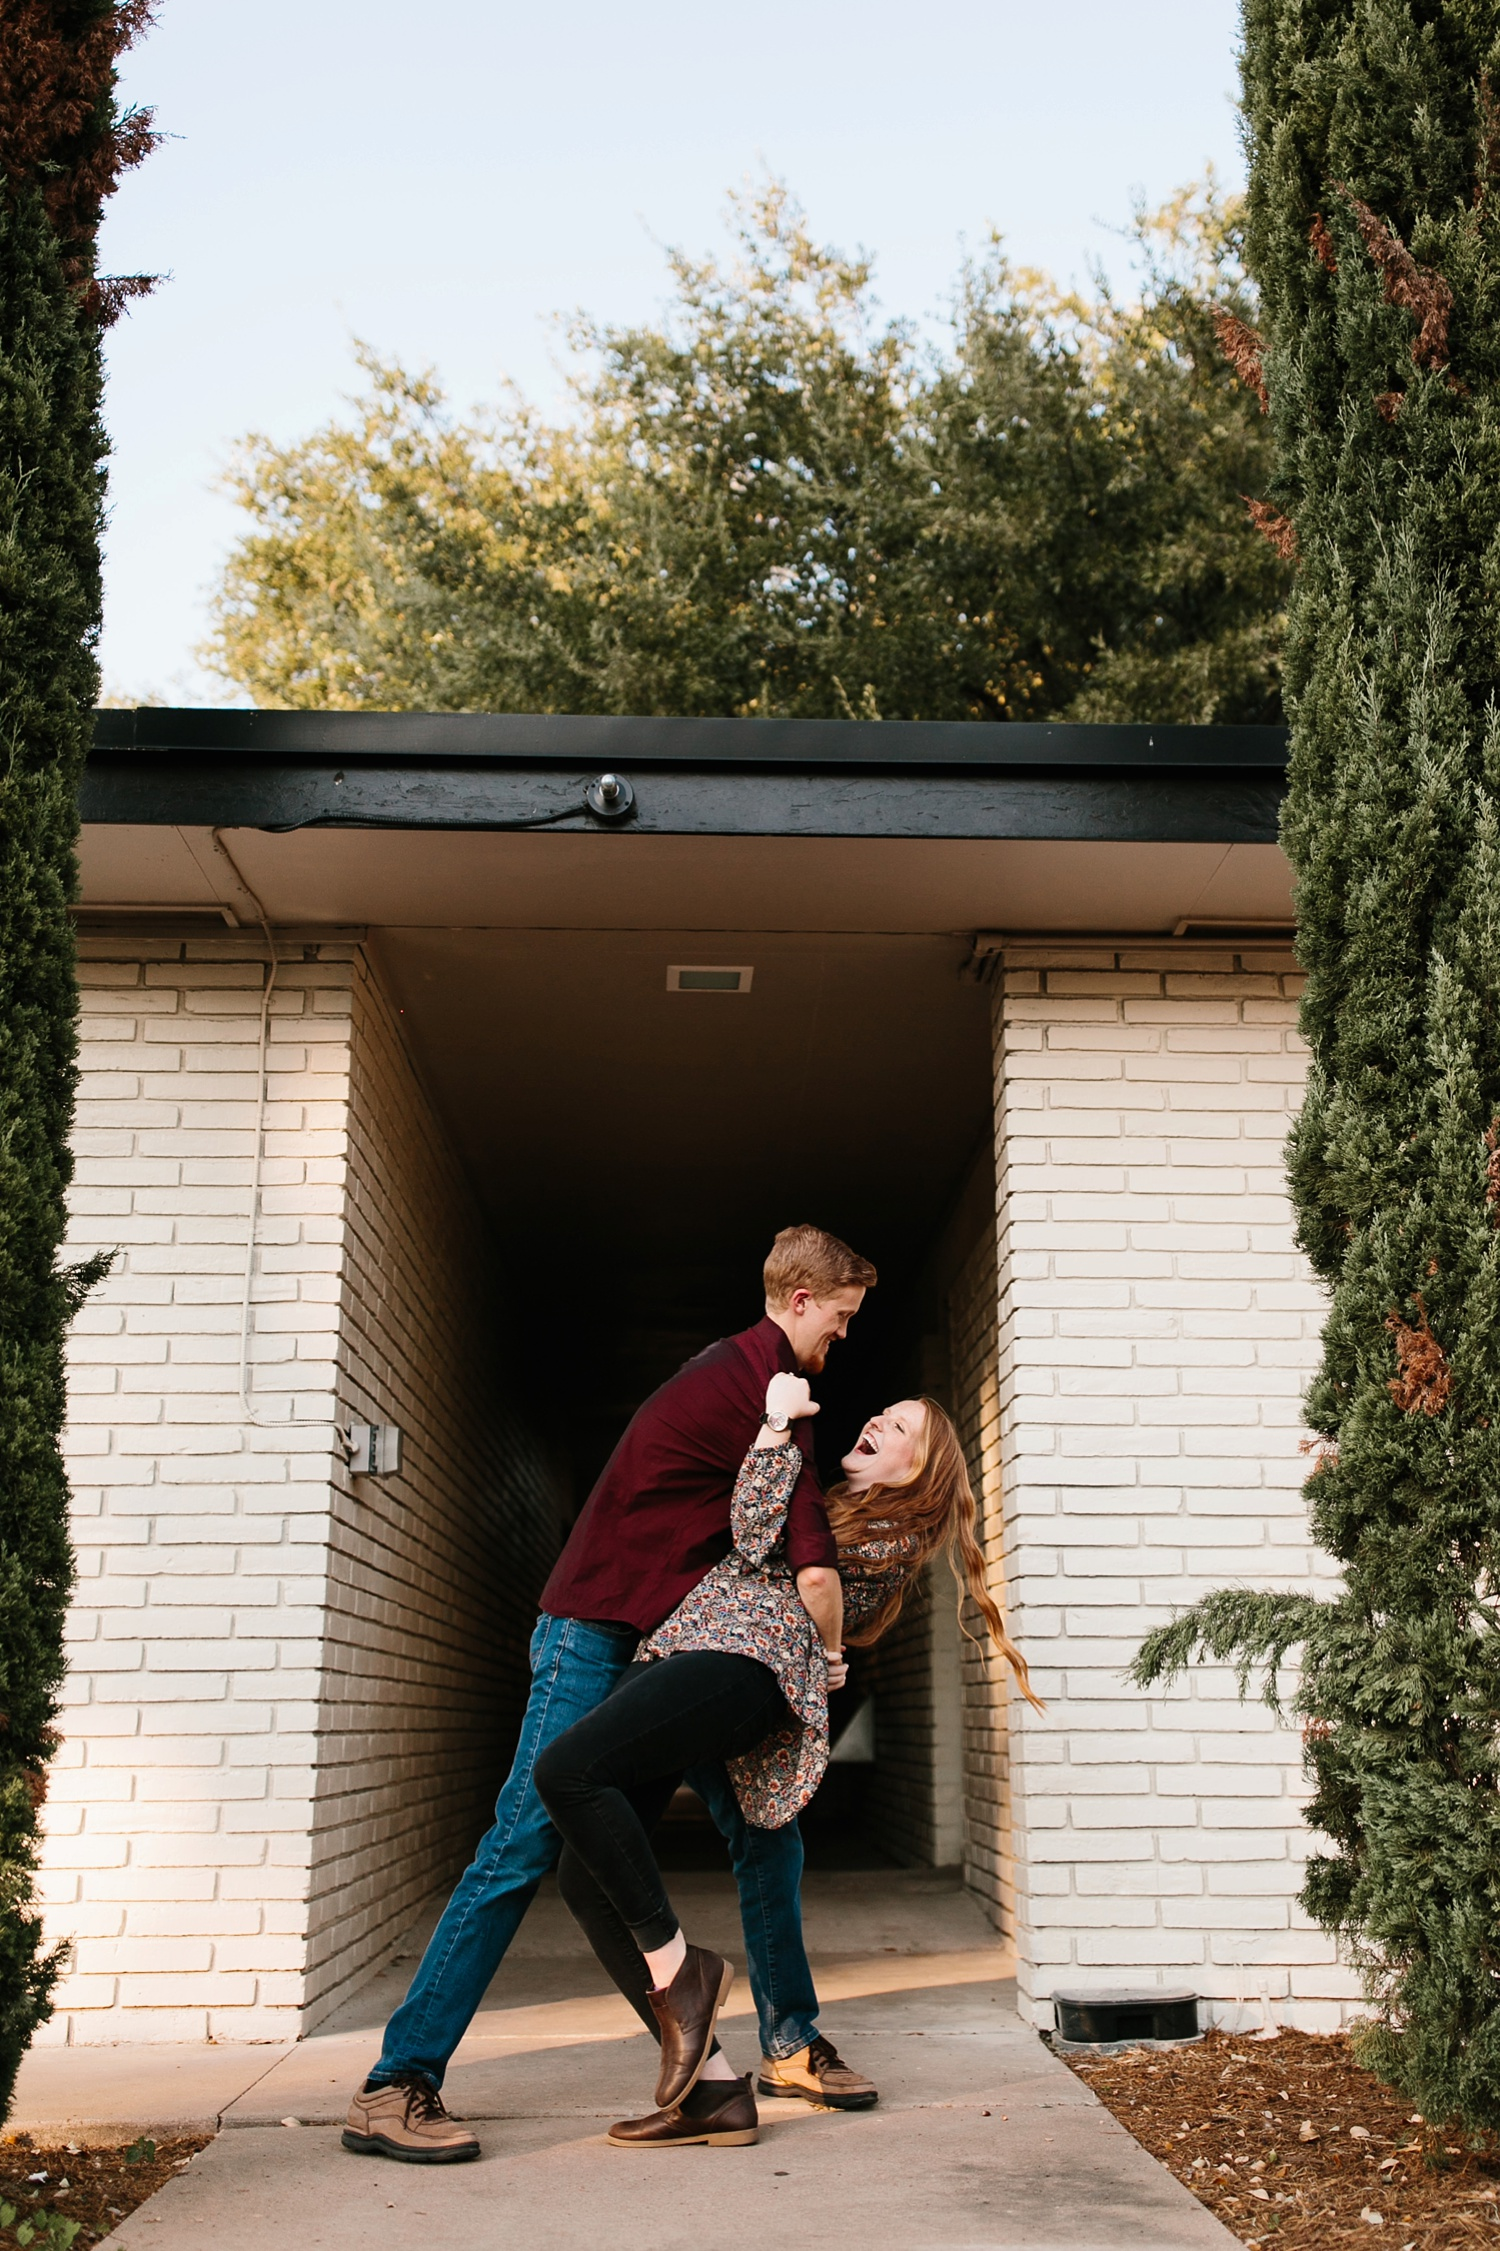 Kayla + Alex _ a joyful and loving engagement shoot in Waco, Texas by North Texas Wedding Photographer Rachel Meagan Photography _28